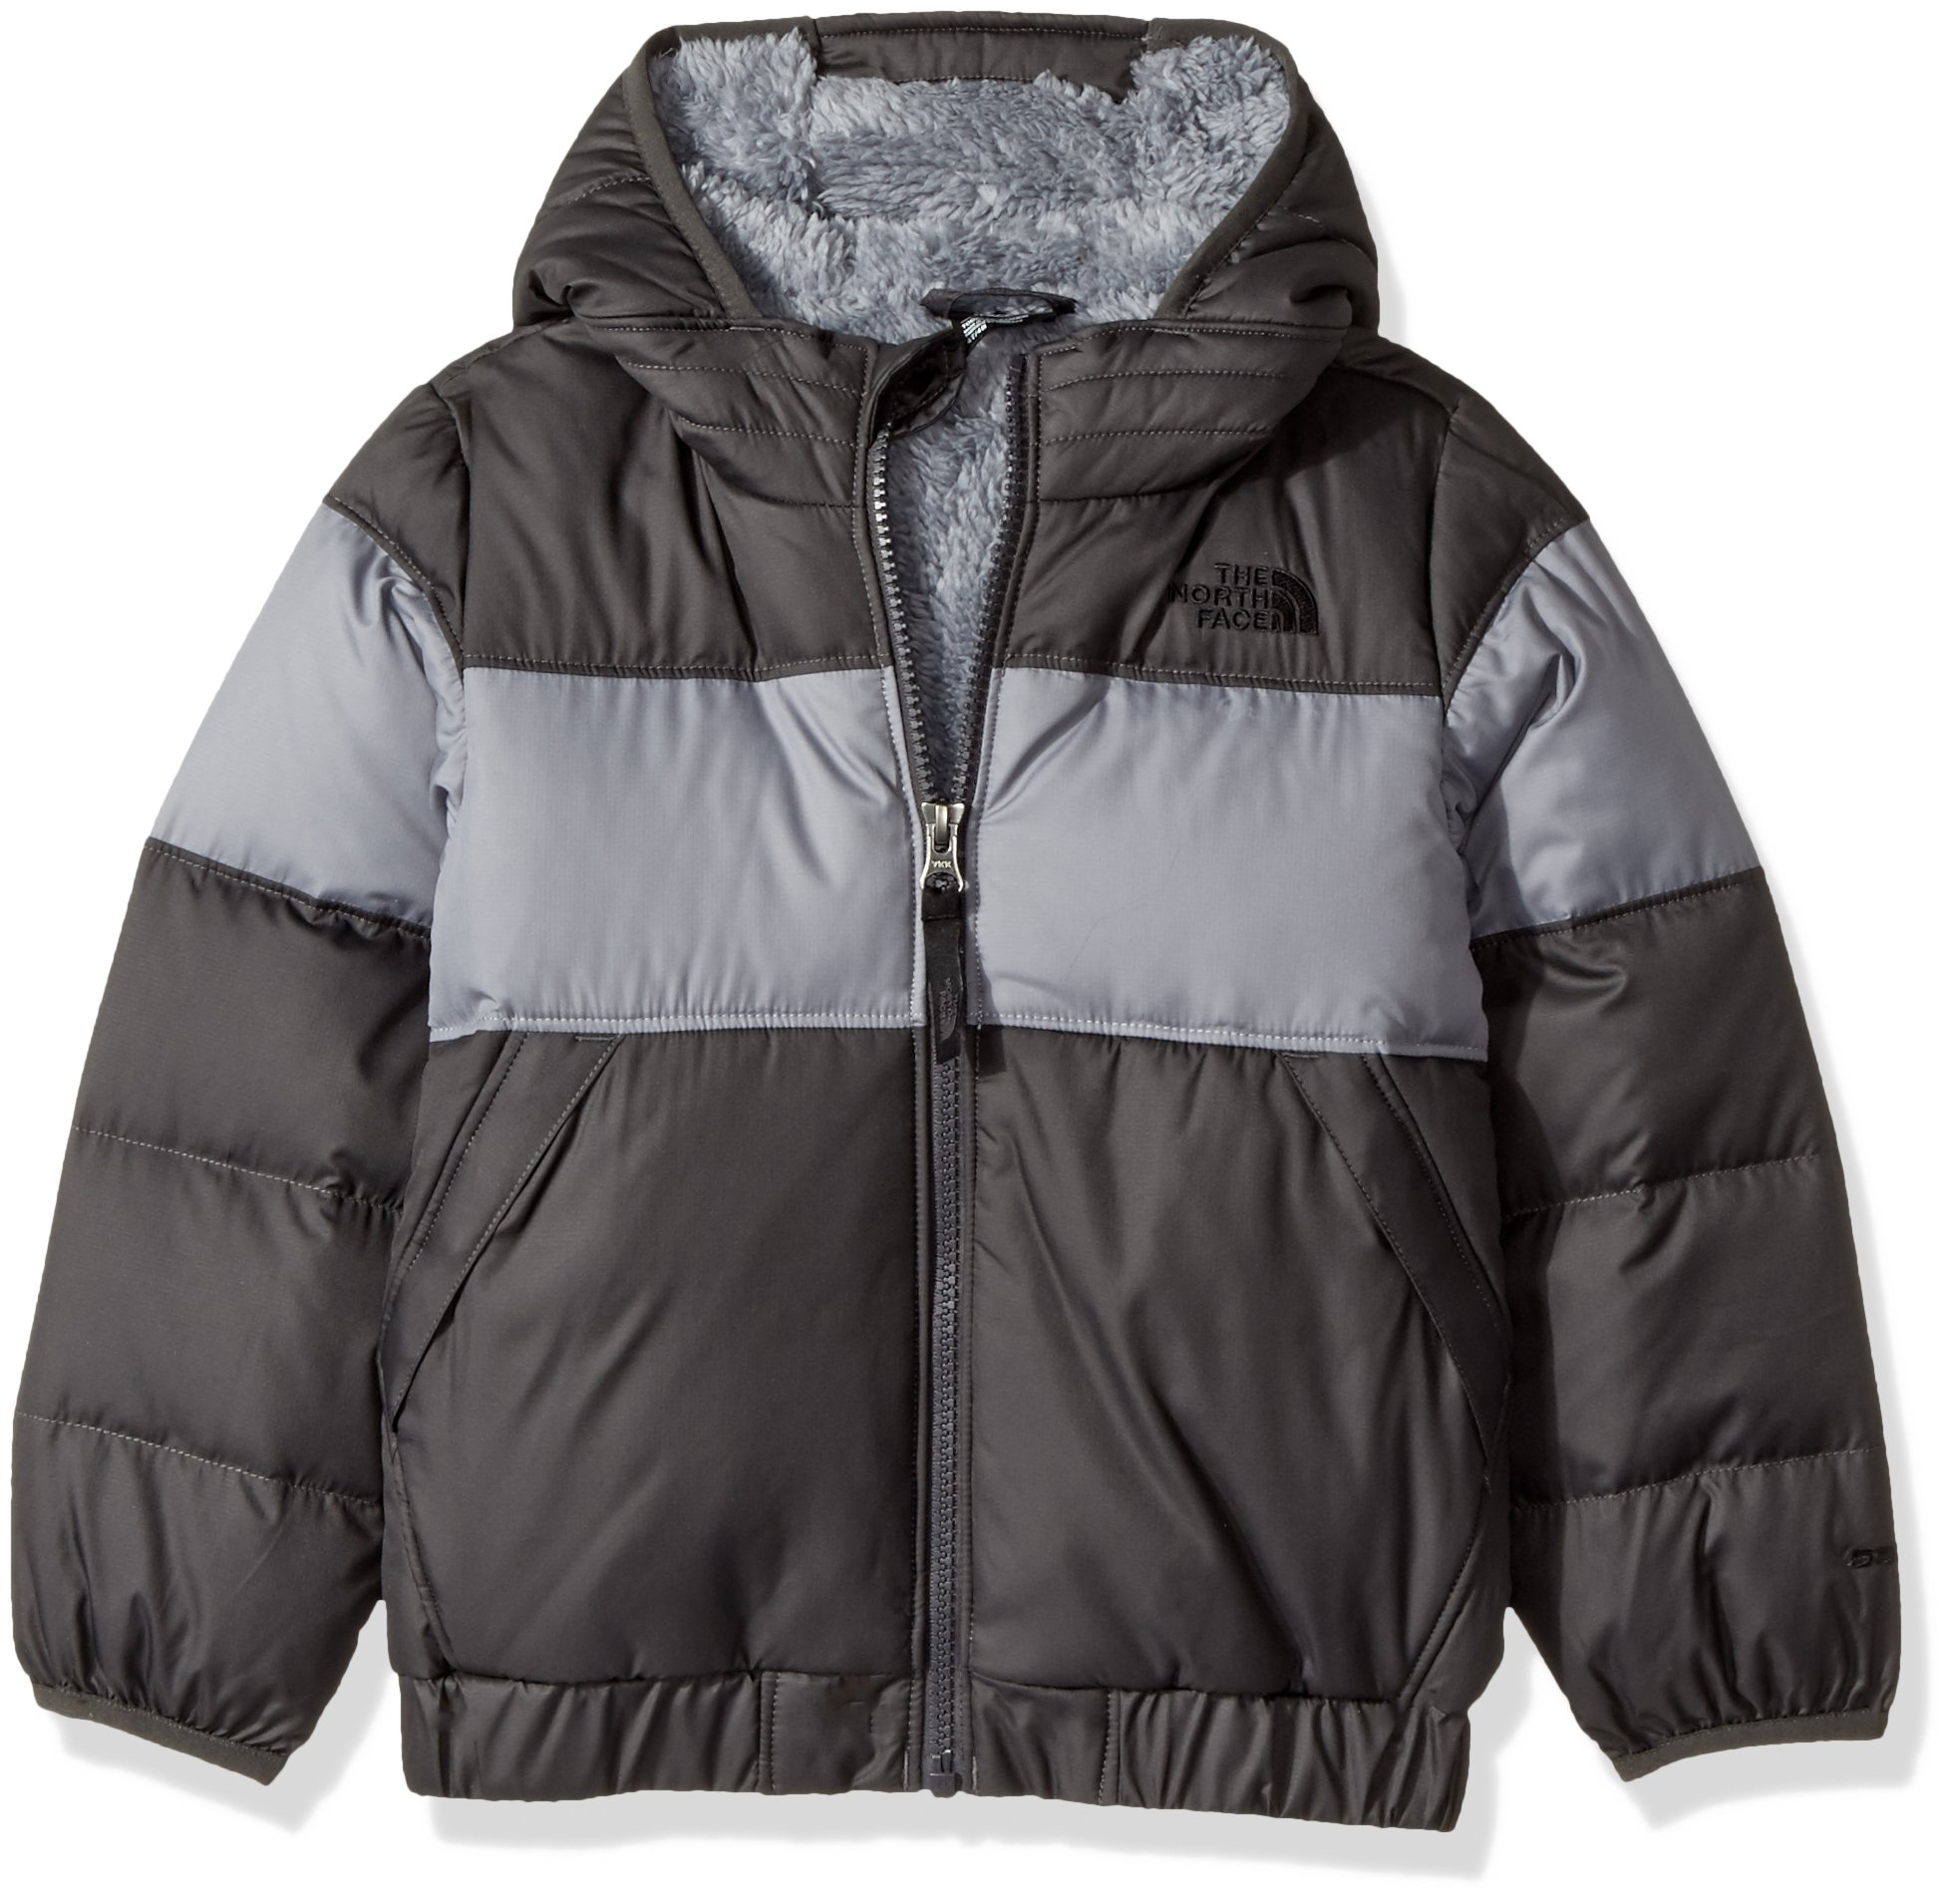 The North Face Toddler Boys Moondoggy 2.0 Down Jacket - Graphite Grey - 4T